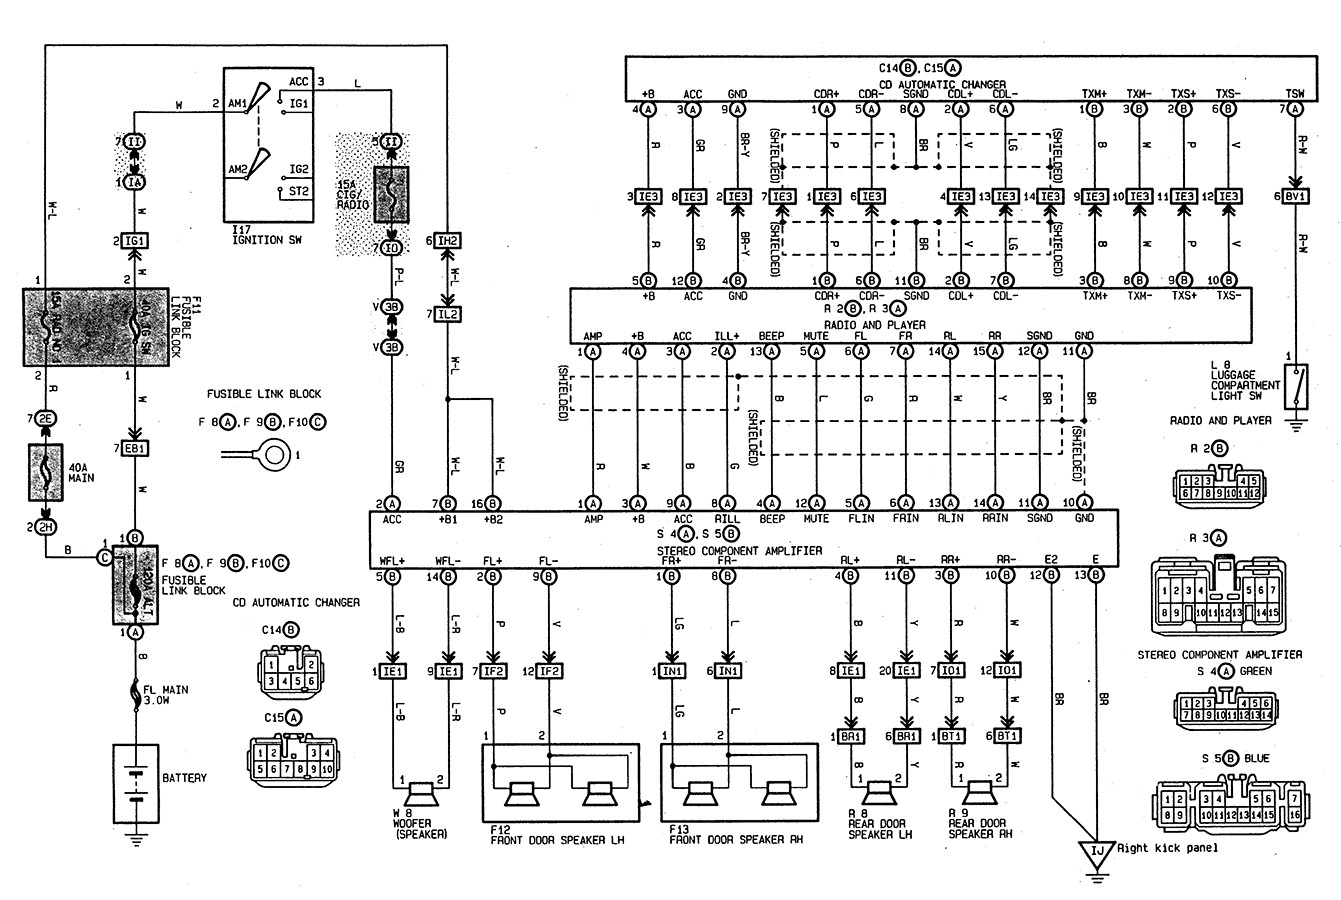 2003 toyota Ta A Wiring Diagram Ytech 1997 toyota Camry Stereo Wiring Wire  Center •